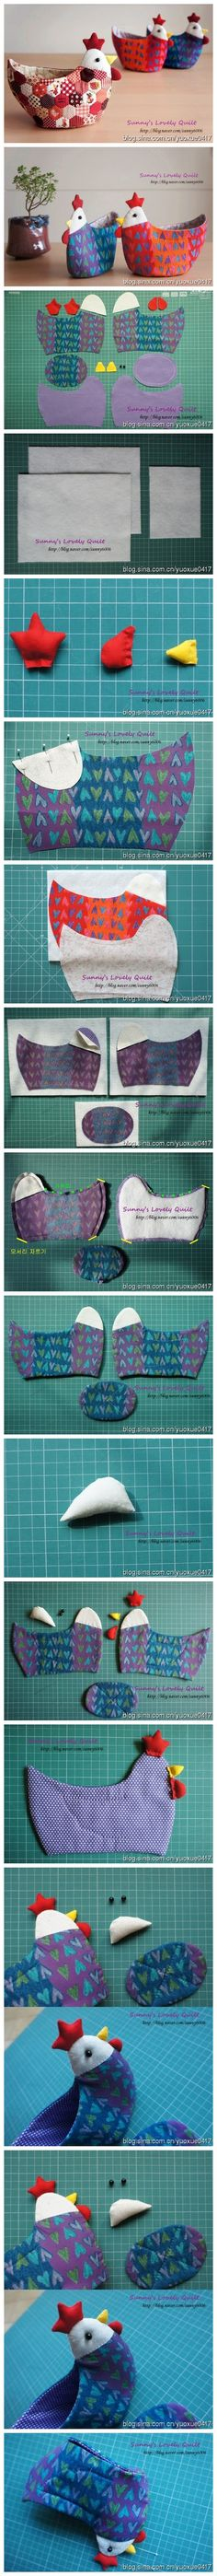 Cute chook fabric baskets. No written(ie understandable to an Aussie) directions - just pictures.